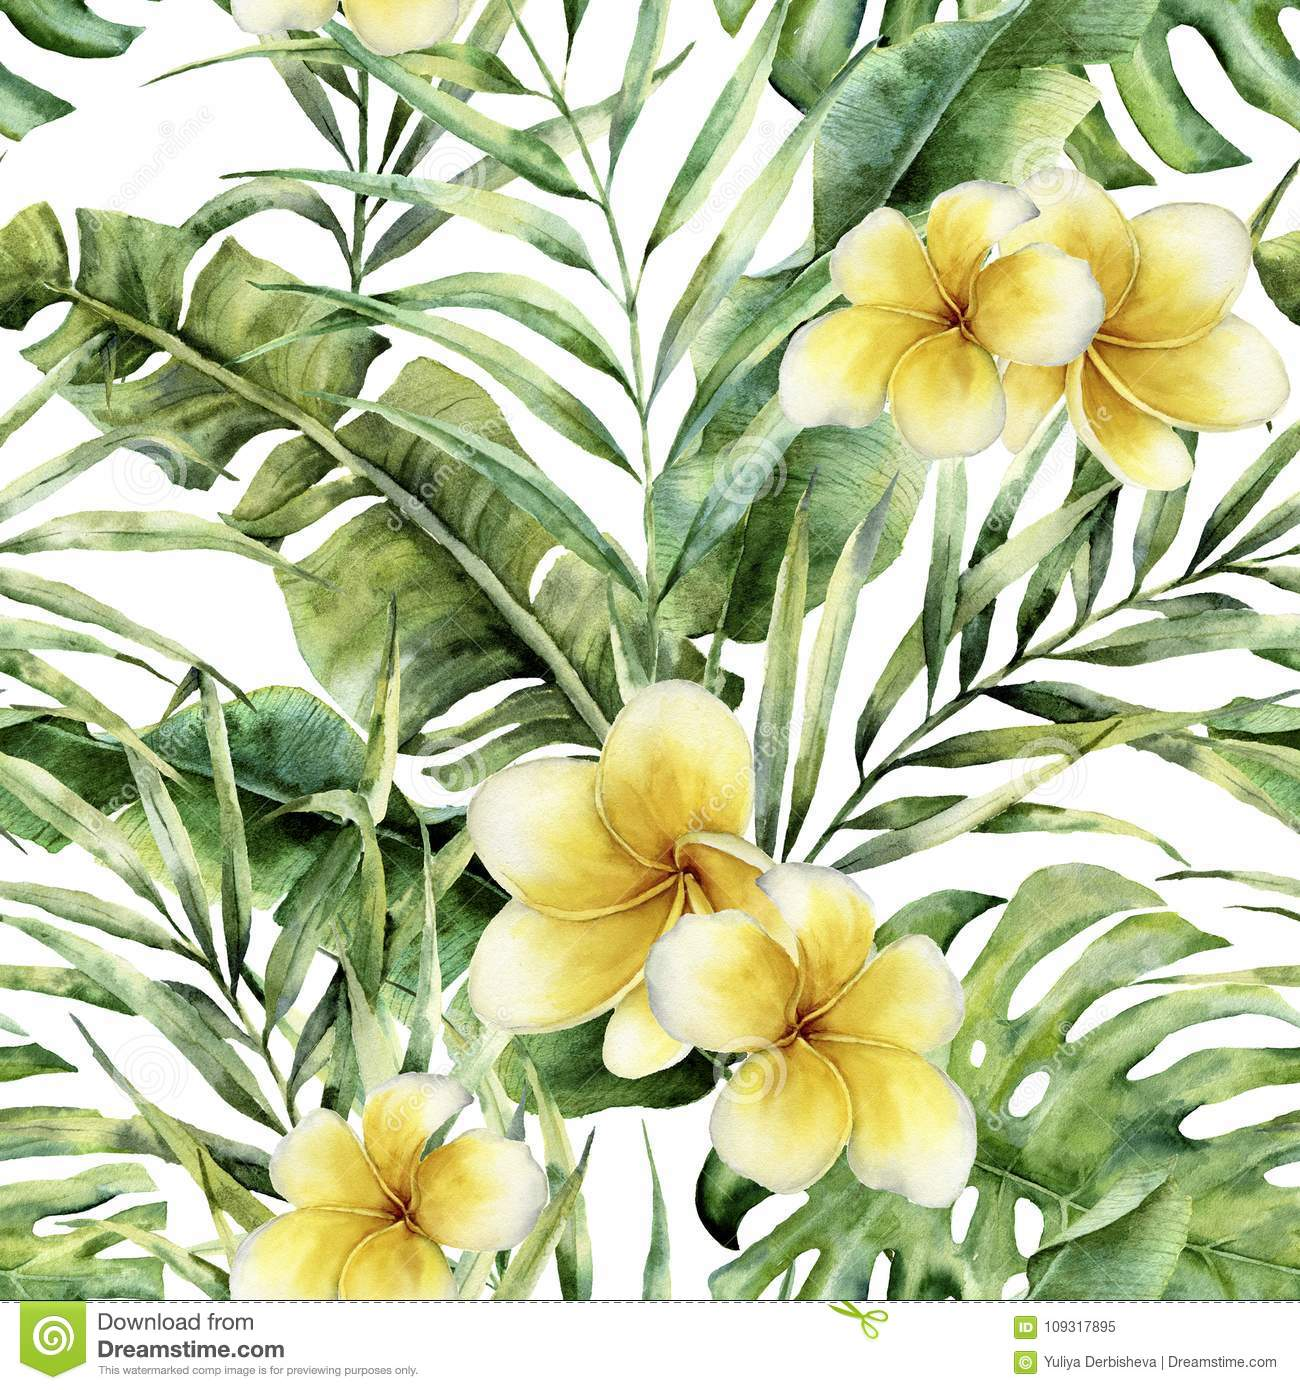 Watercolor pattern with plumeria, palm tree leaves. Hand painted exotic greenery branch. Botanical illustration. For